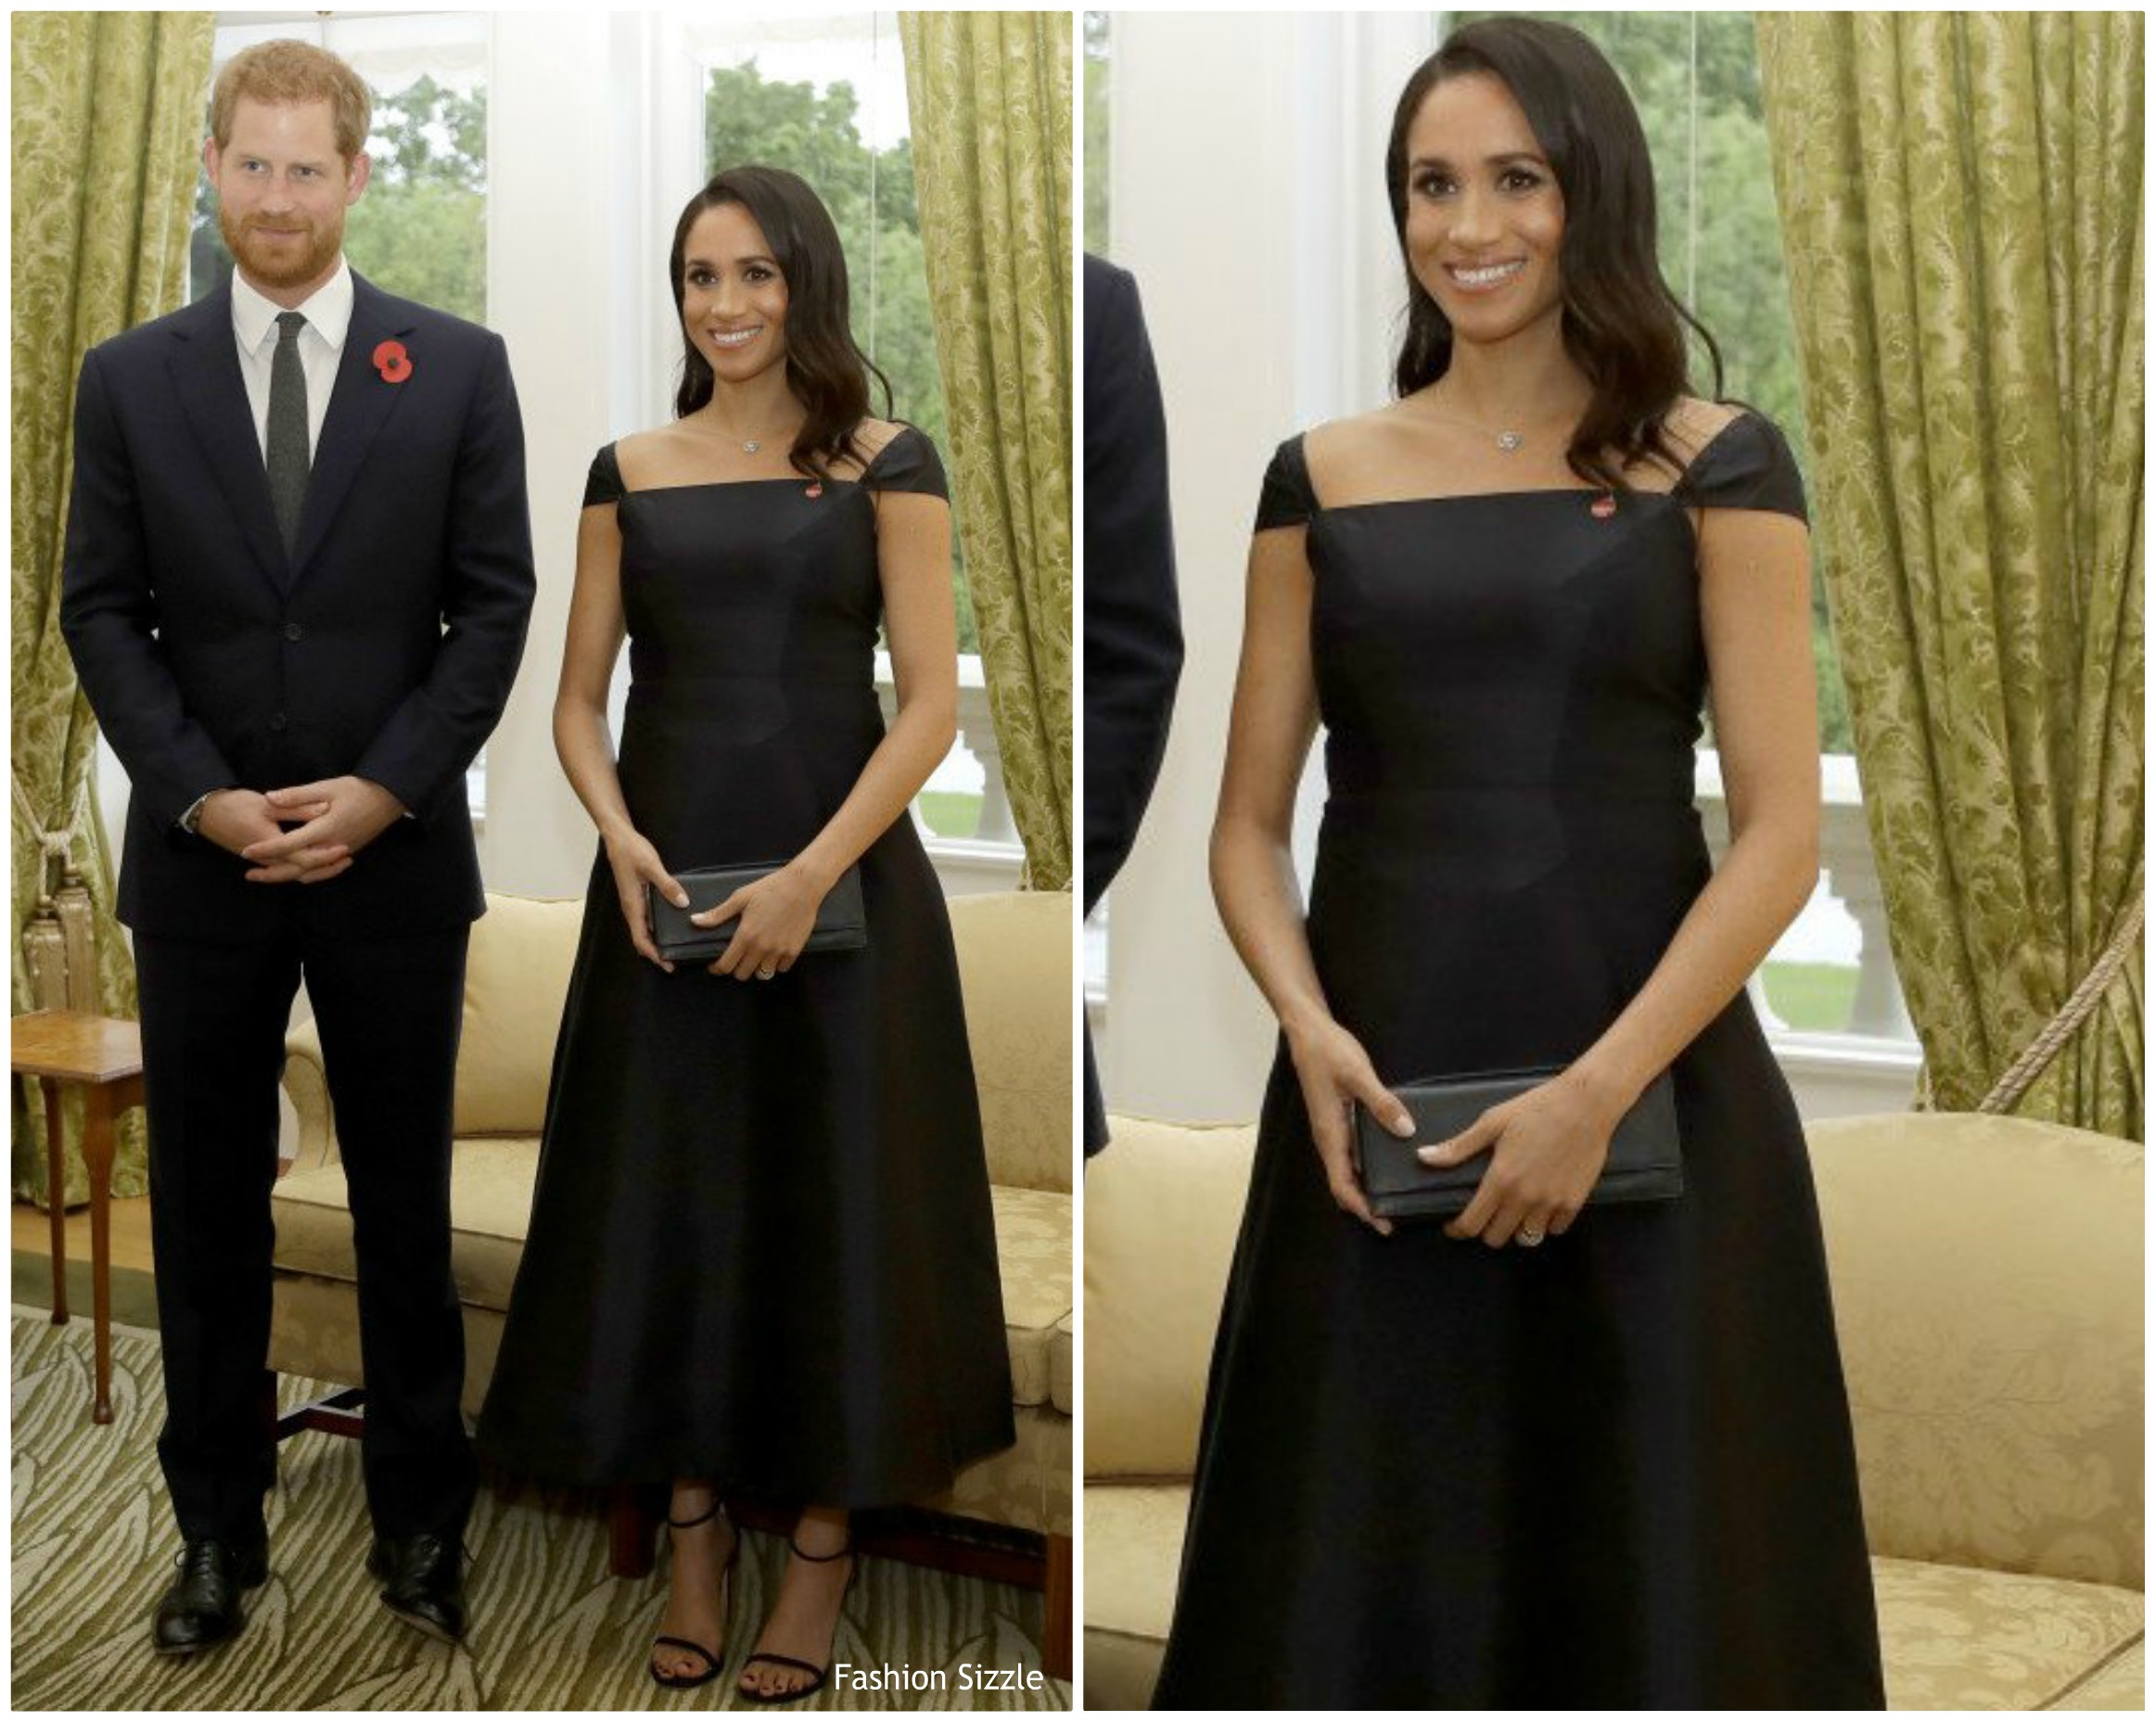 meghan-markle-duchess-of-sussex-in-gabriela-hearst-royal-tour-in-new-zealand